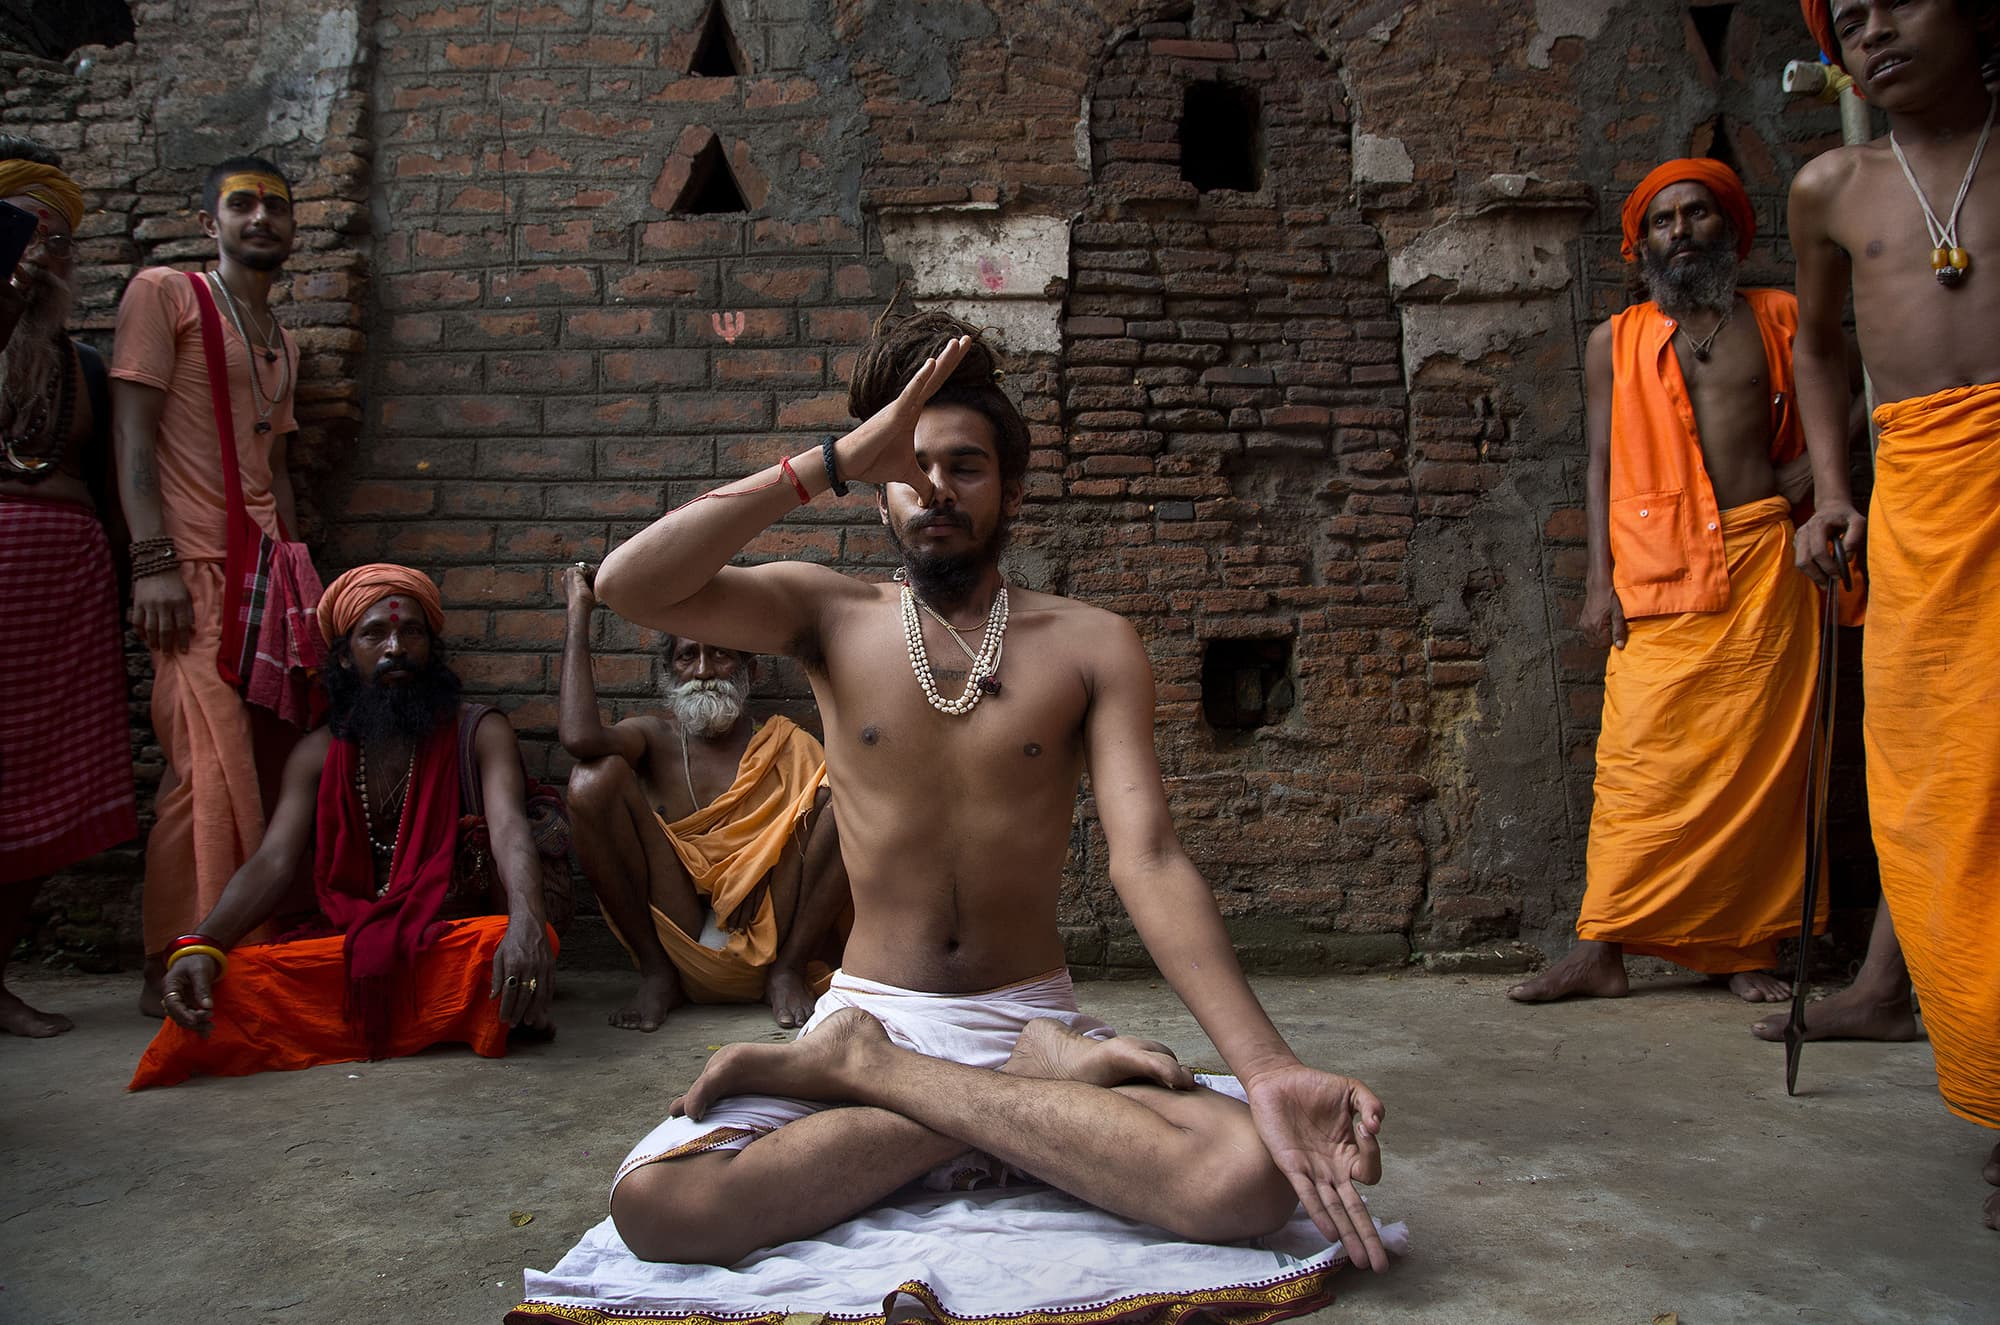 An Indian Sadhu, or Hindu holy man, performs yoga on International Yoga Day at Kamakhya temple in Gauhati, India on June 21. — AP